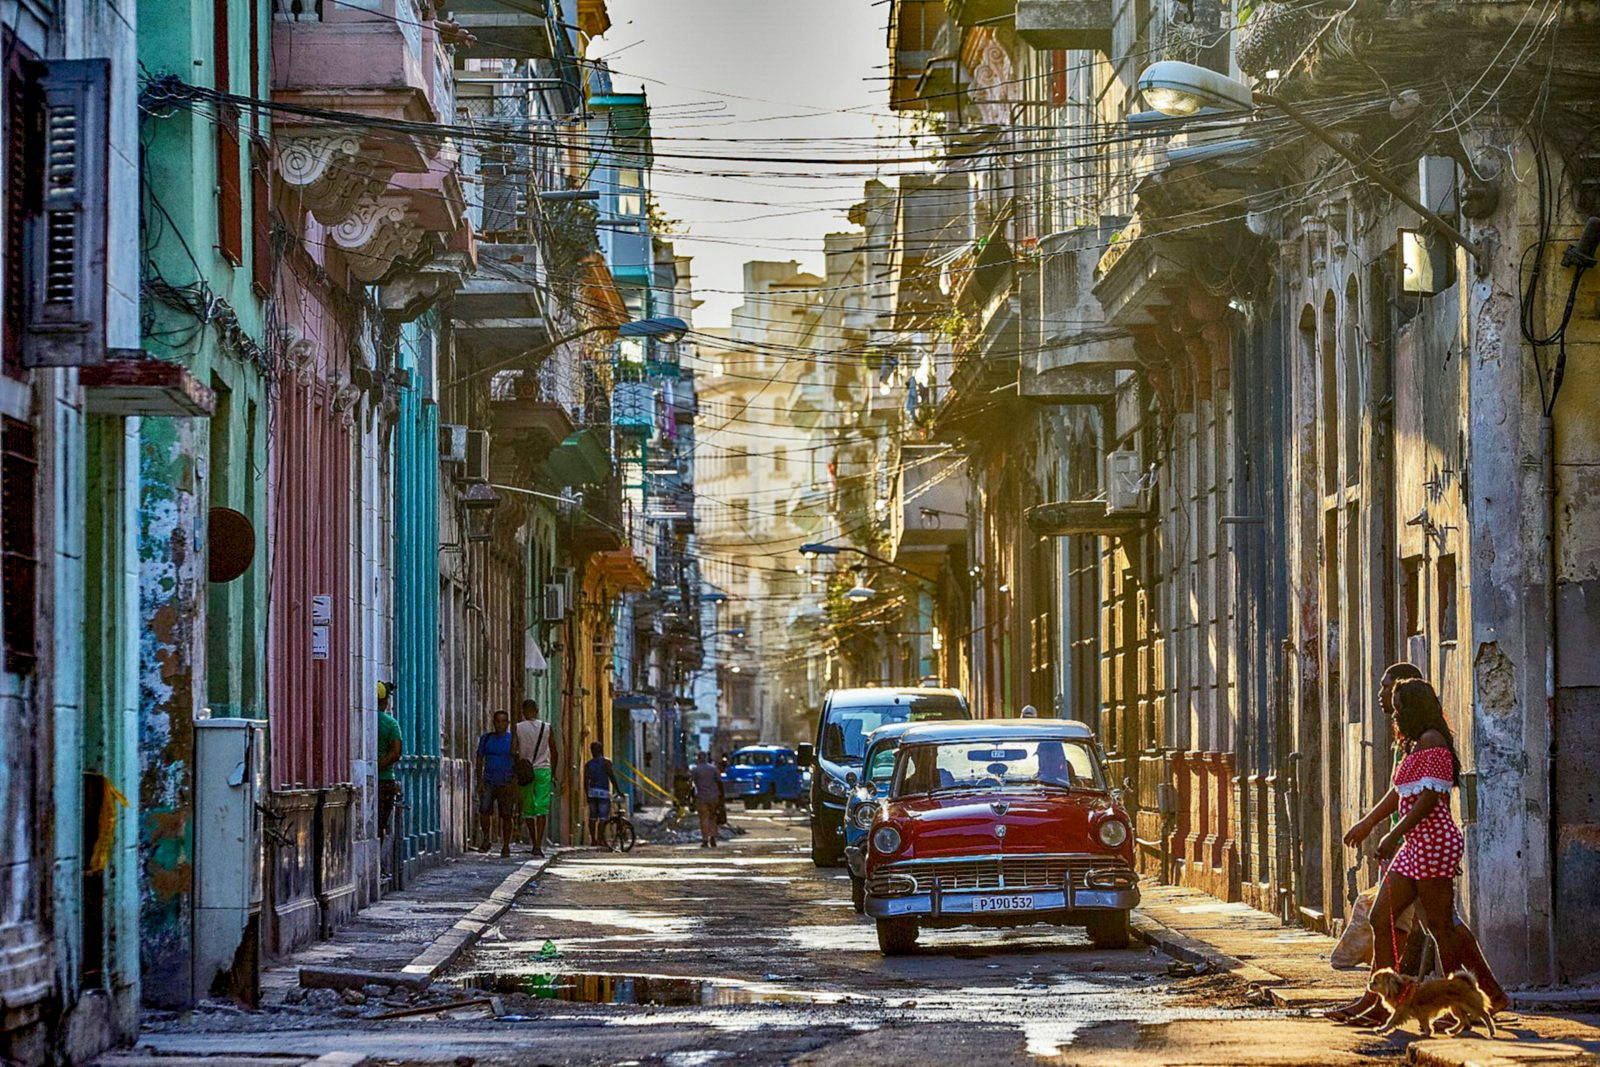 Yemen and Cuba- 2 Foreign Policy Challenges for the Biden Administration